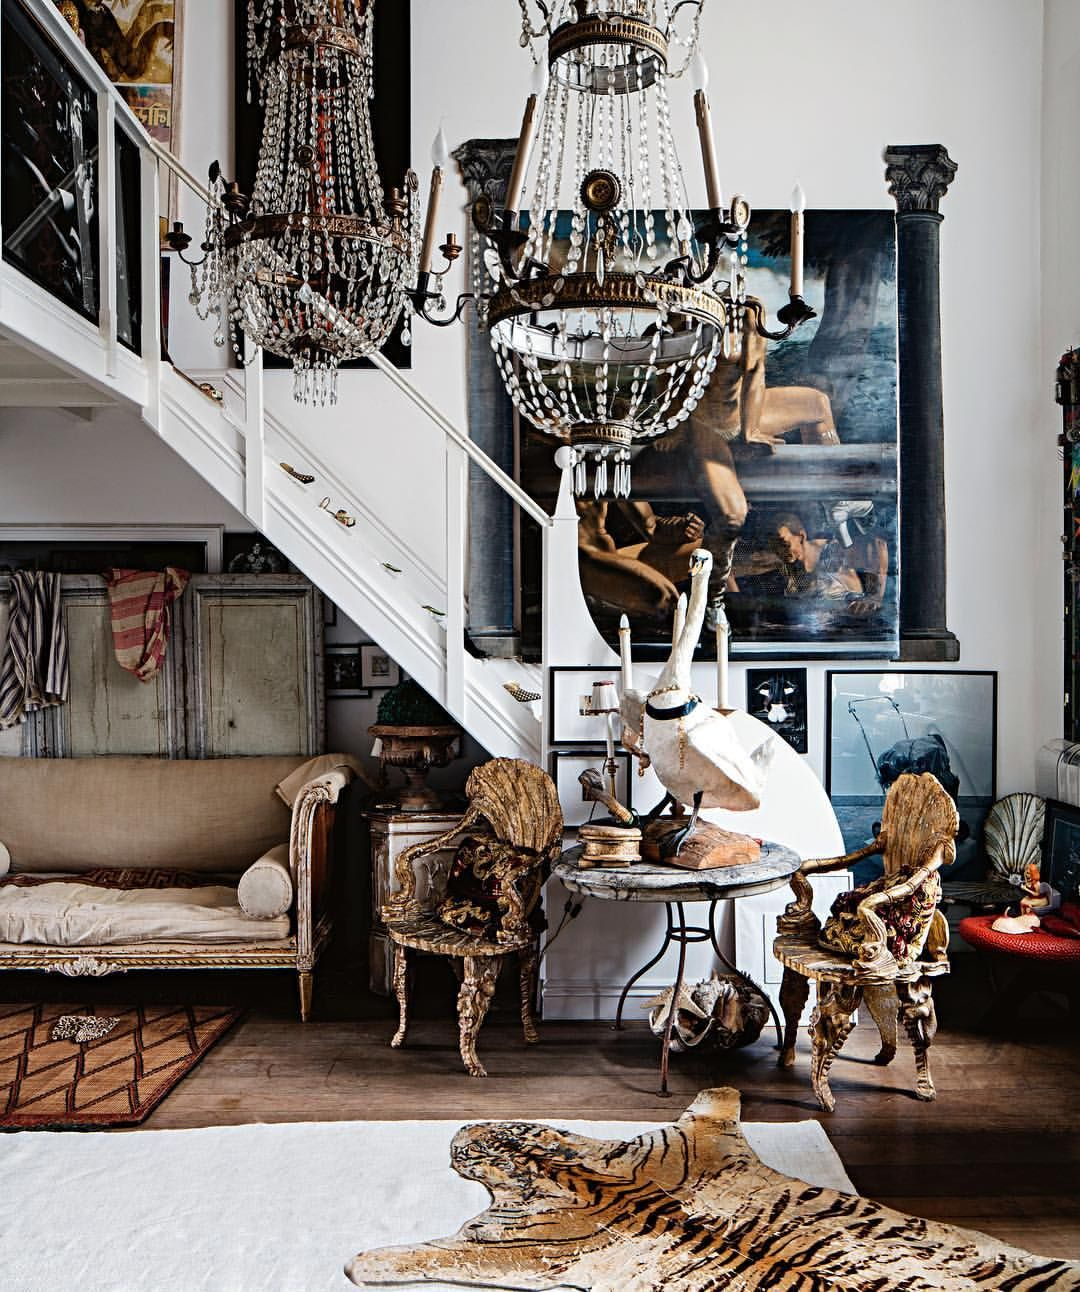 20 Eclectic Interior Design Ideas For Your Best Home Eclectic